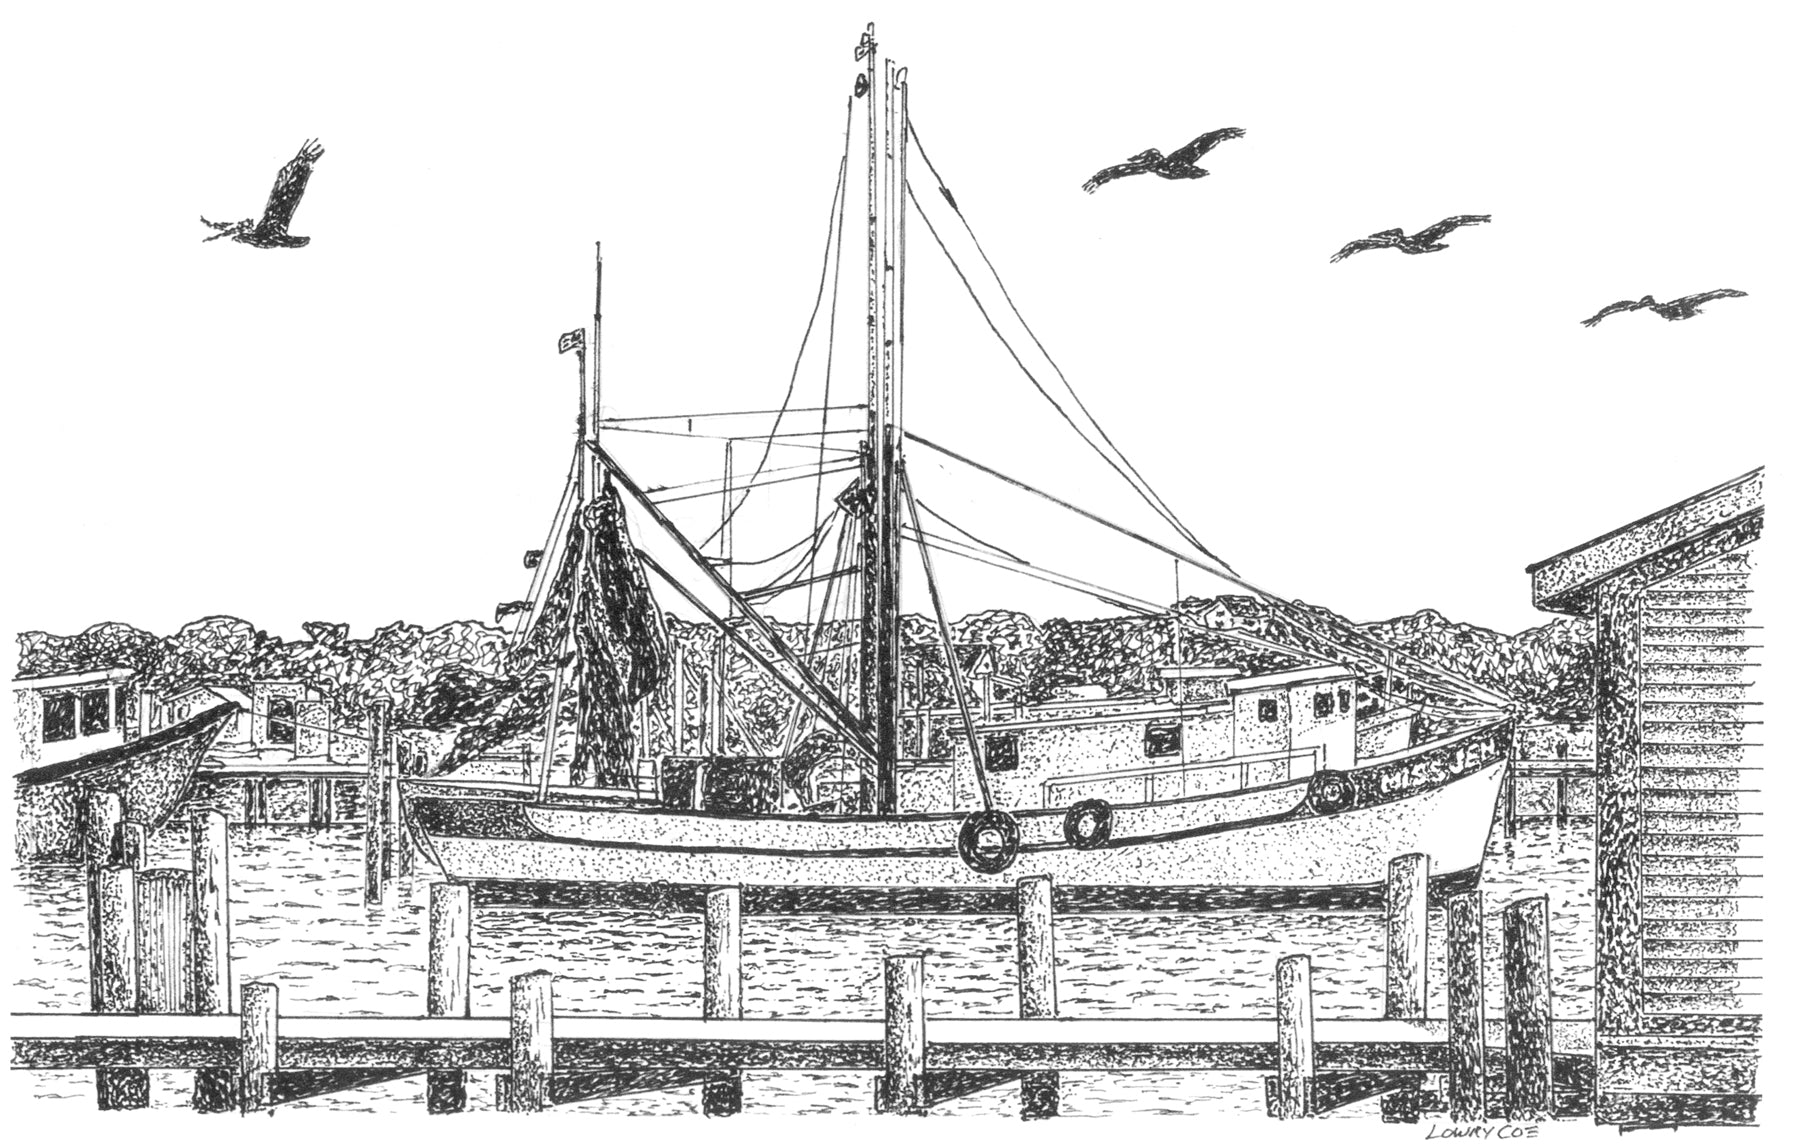 Shrimp Boat on Shem Creek Notecard/s